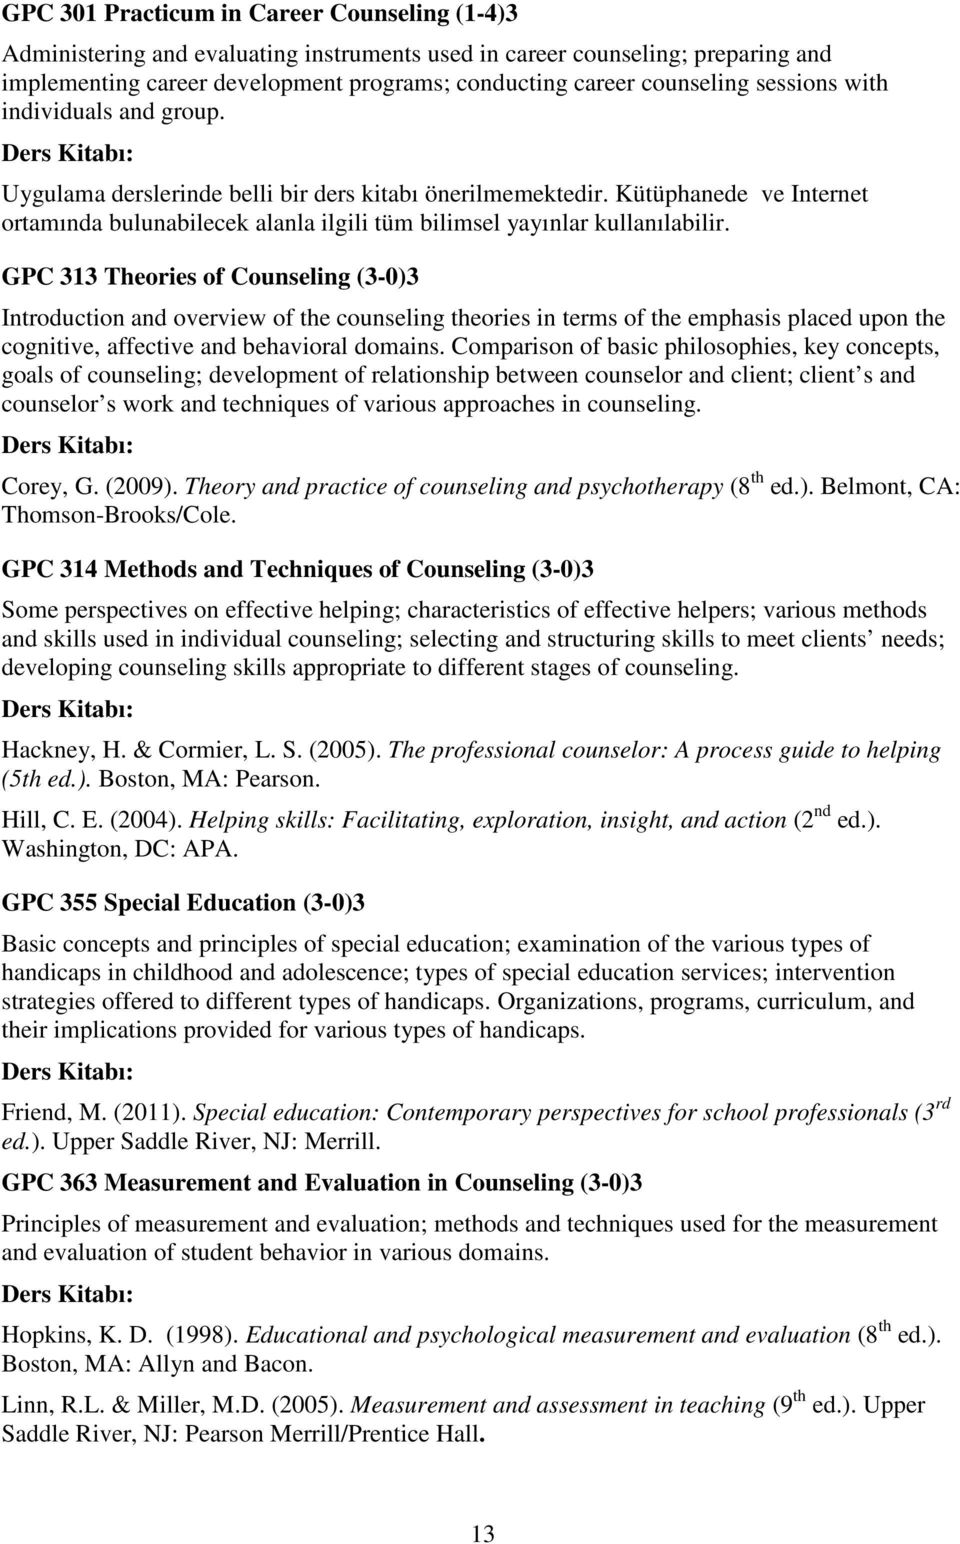 GPC 313 Theories of Counseling (3-0)3 Introduction and overview of the counseling theories in terms of the emphasis placed upon the cognitive, affective and behavioral domains.